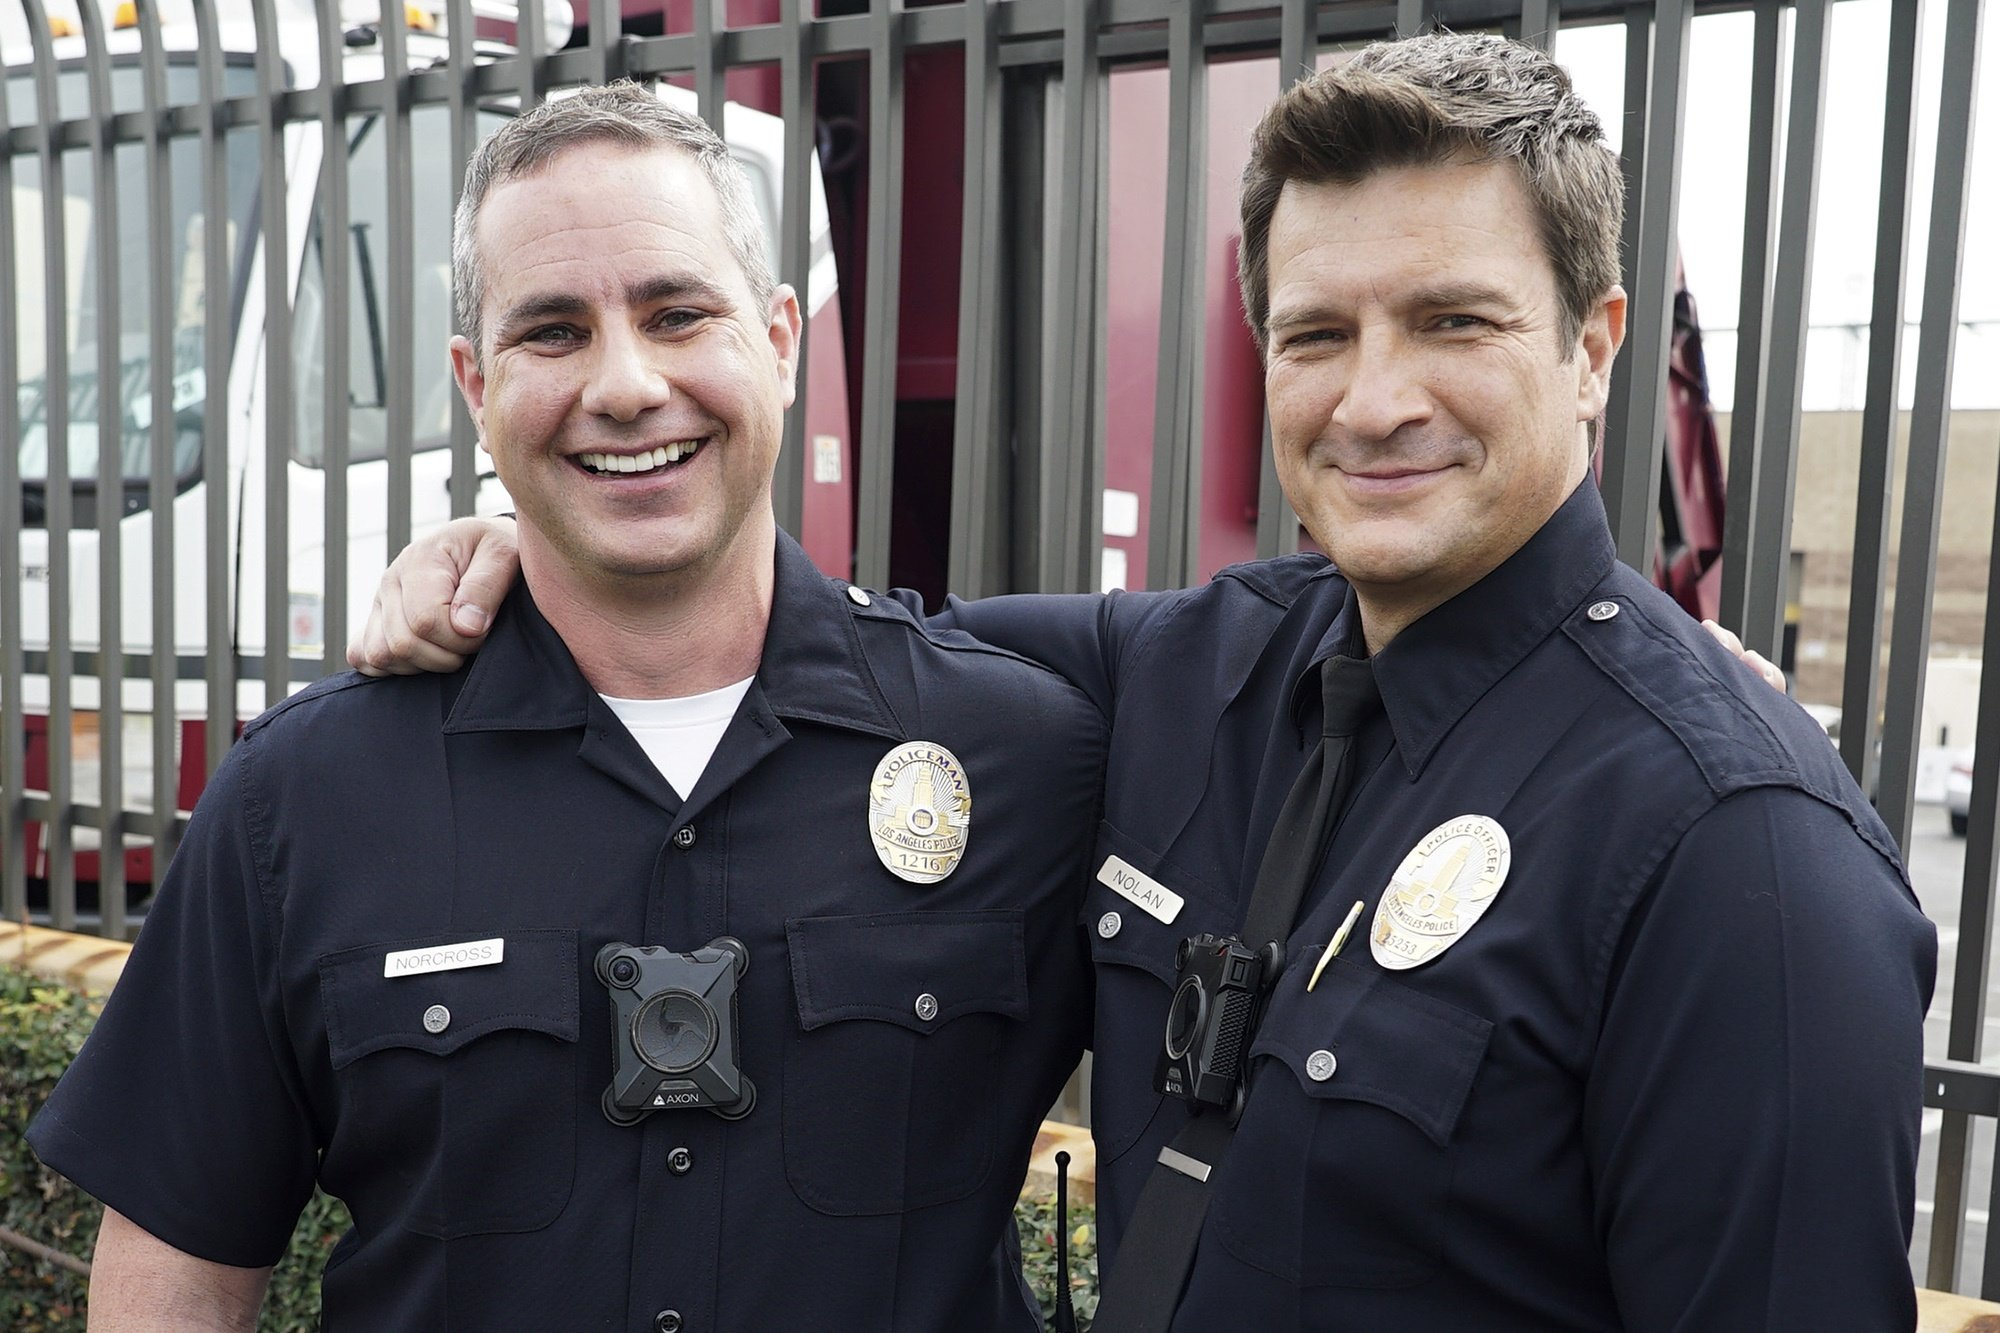 ABC's The Rookie: Made by the LAPD